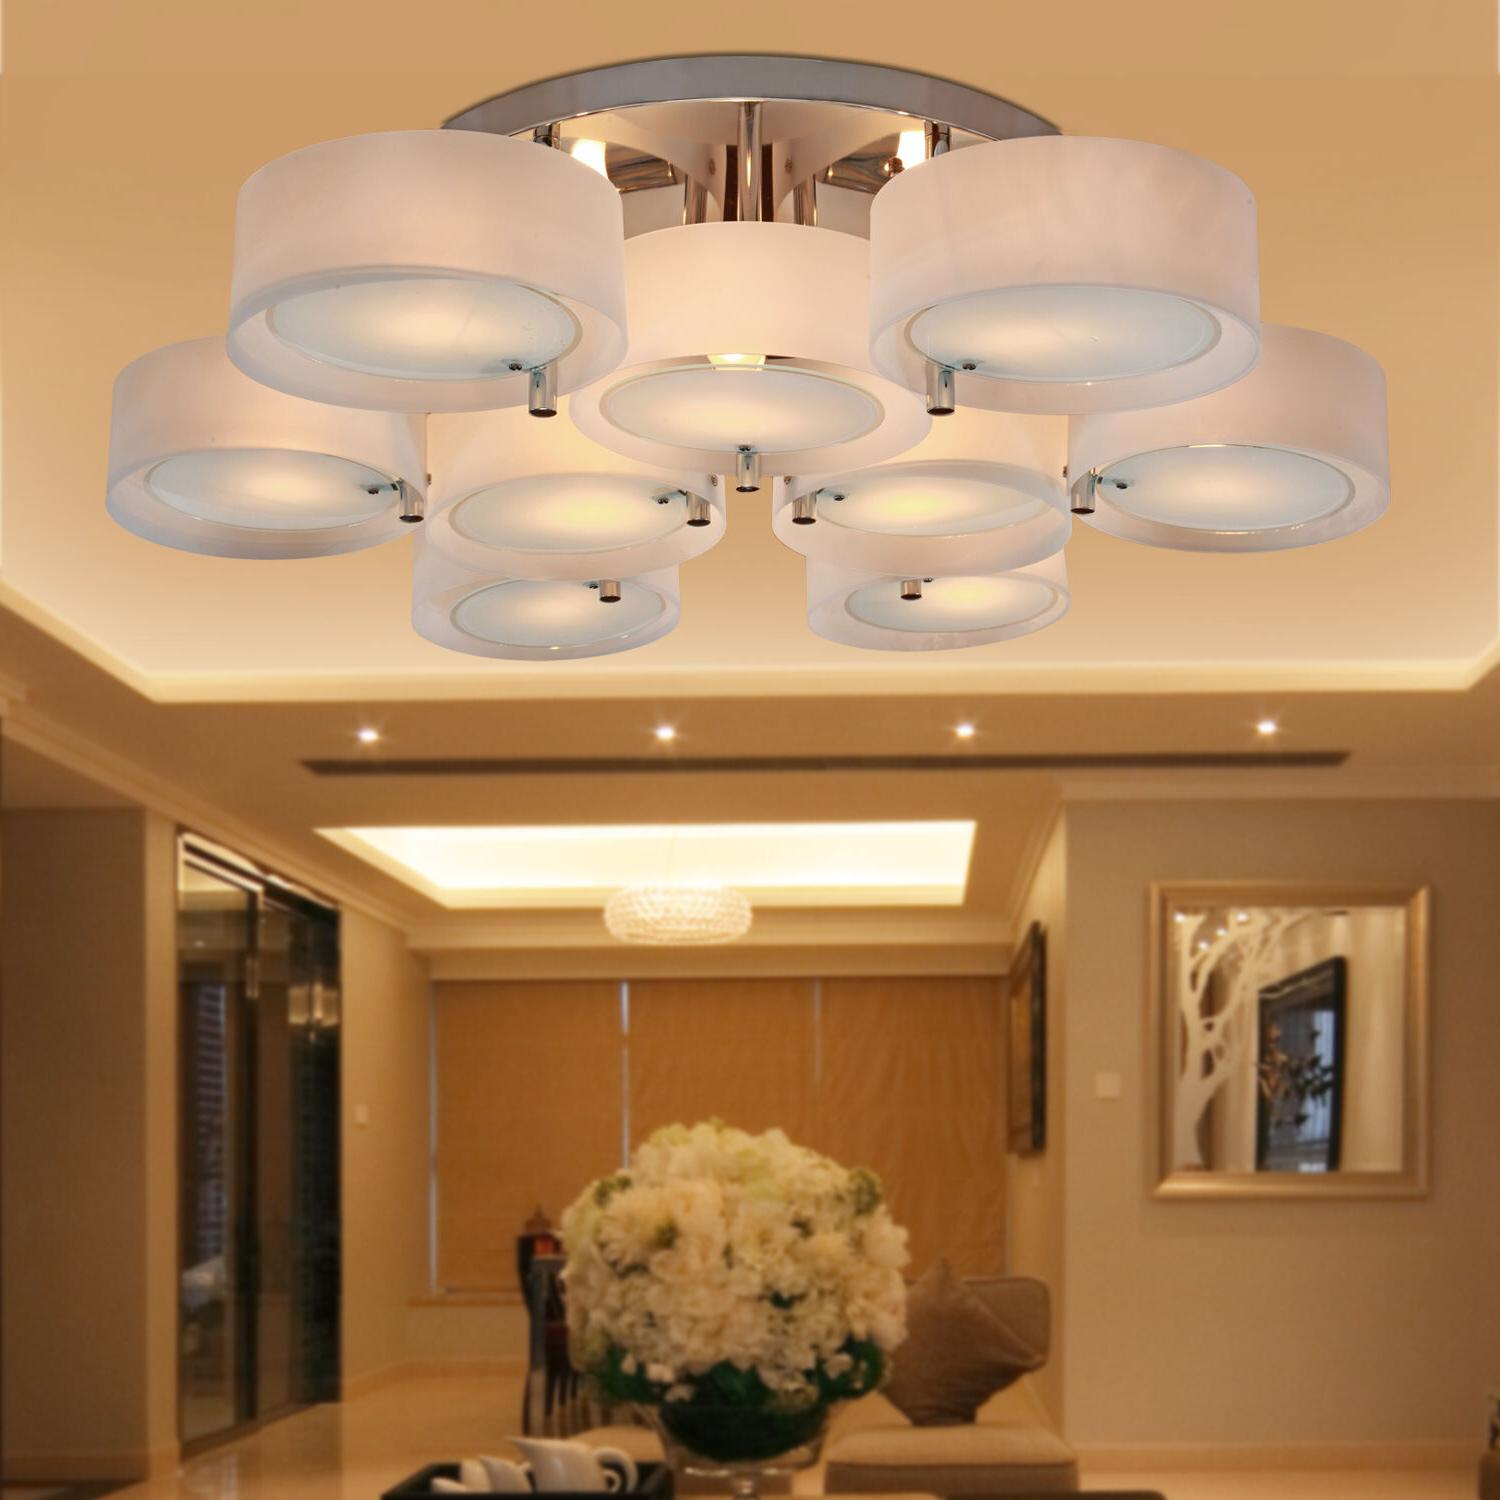 Top Modern Round Acrylic Chandelier Lighting Pendant Lights